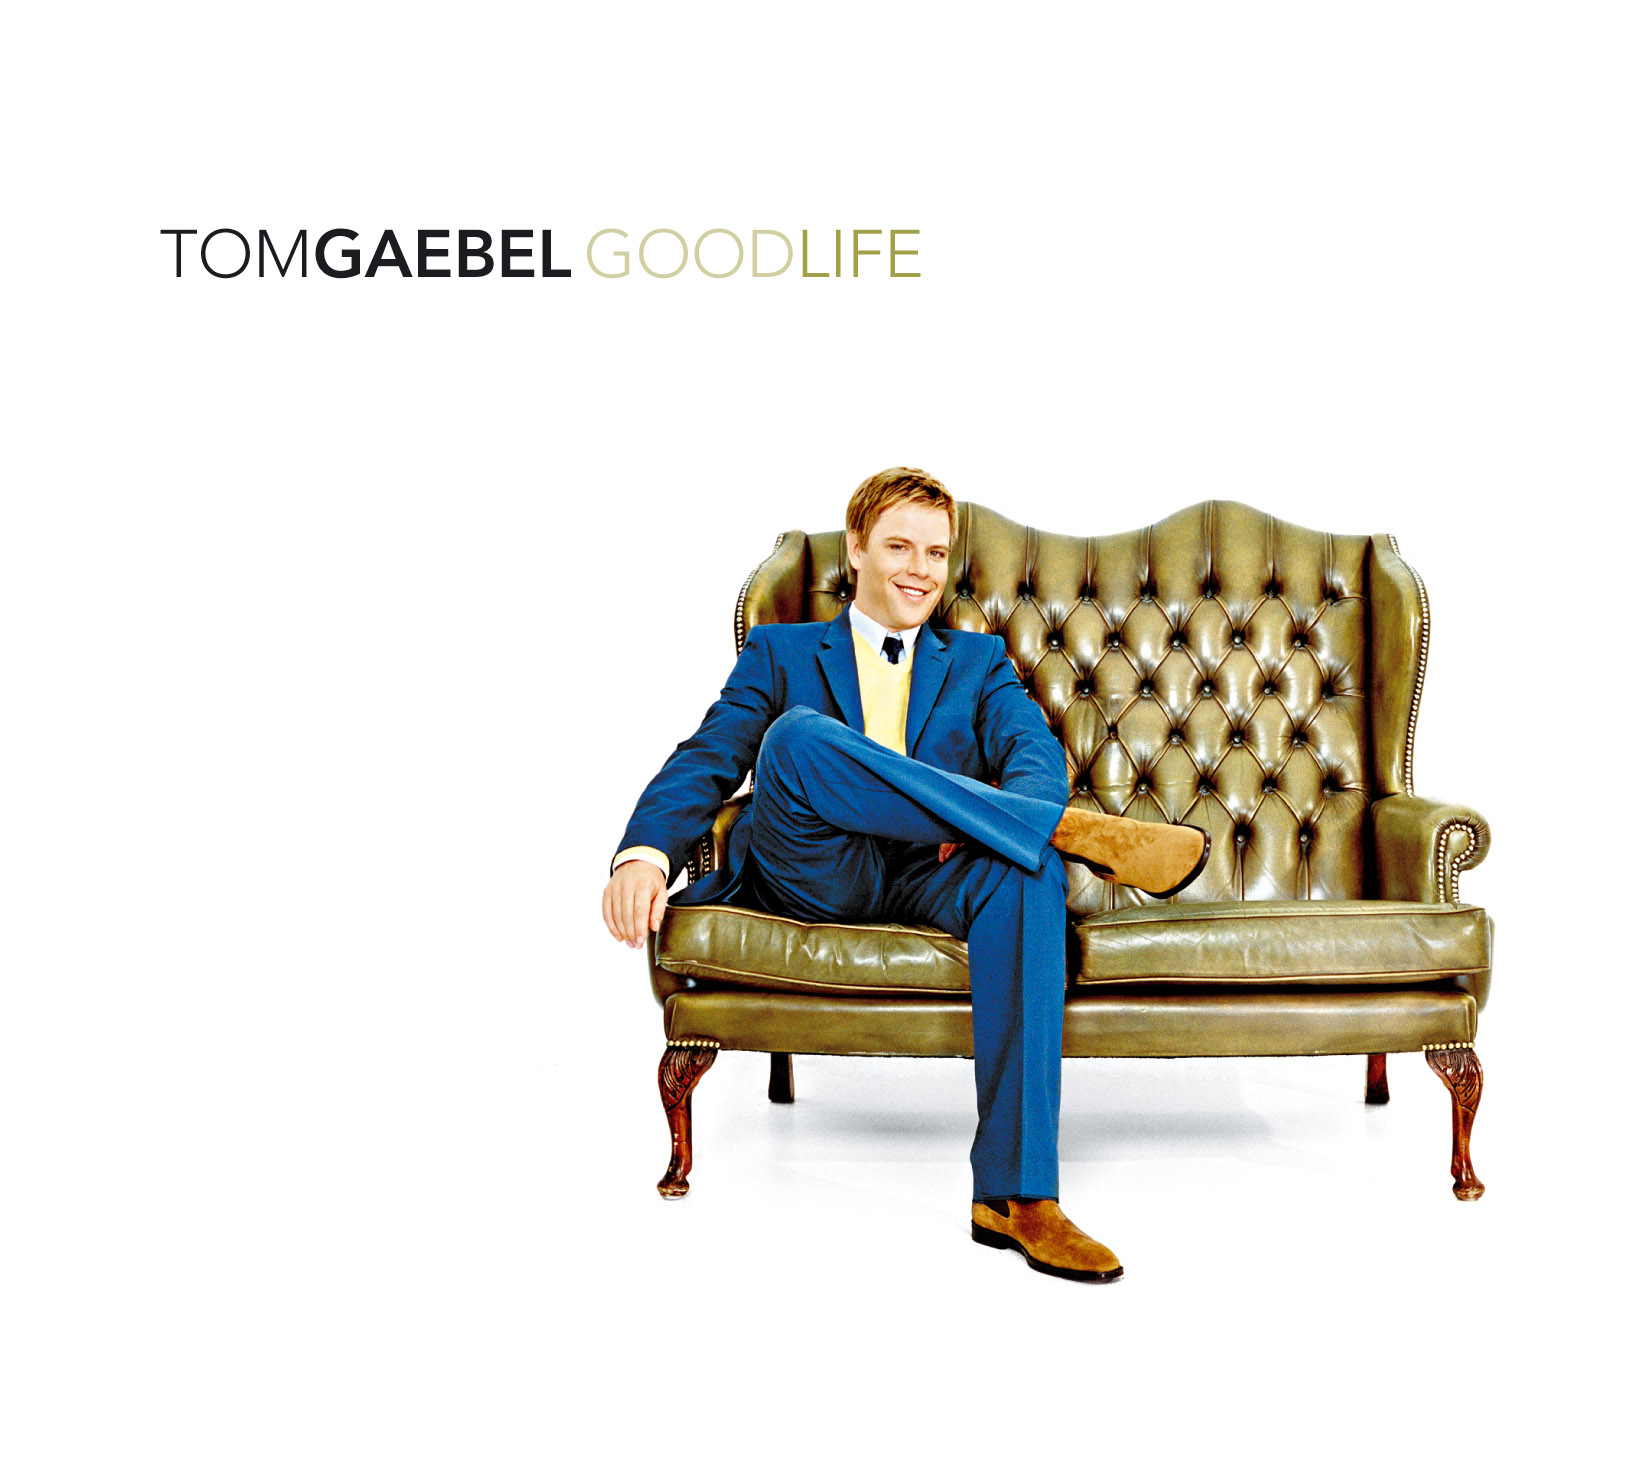 Tom Gaebel - Good Life (2007)